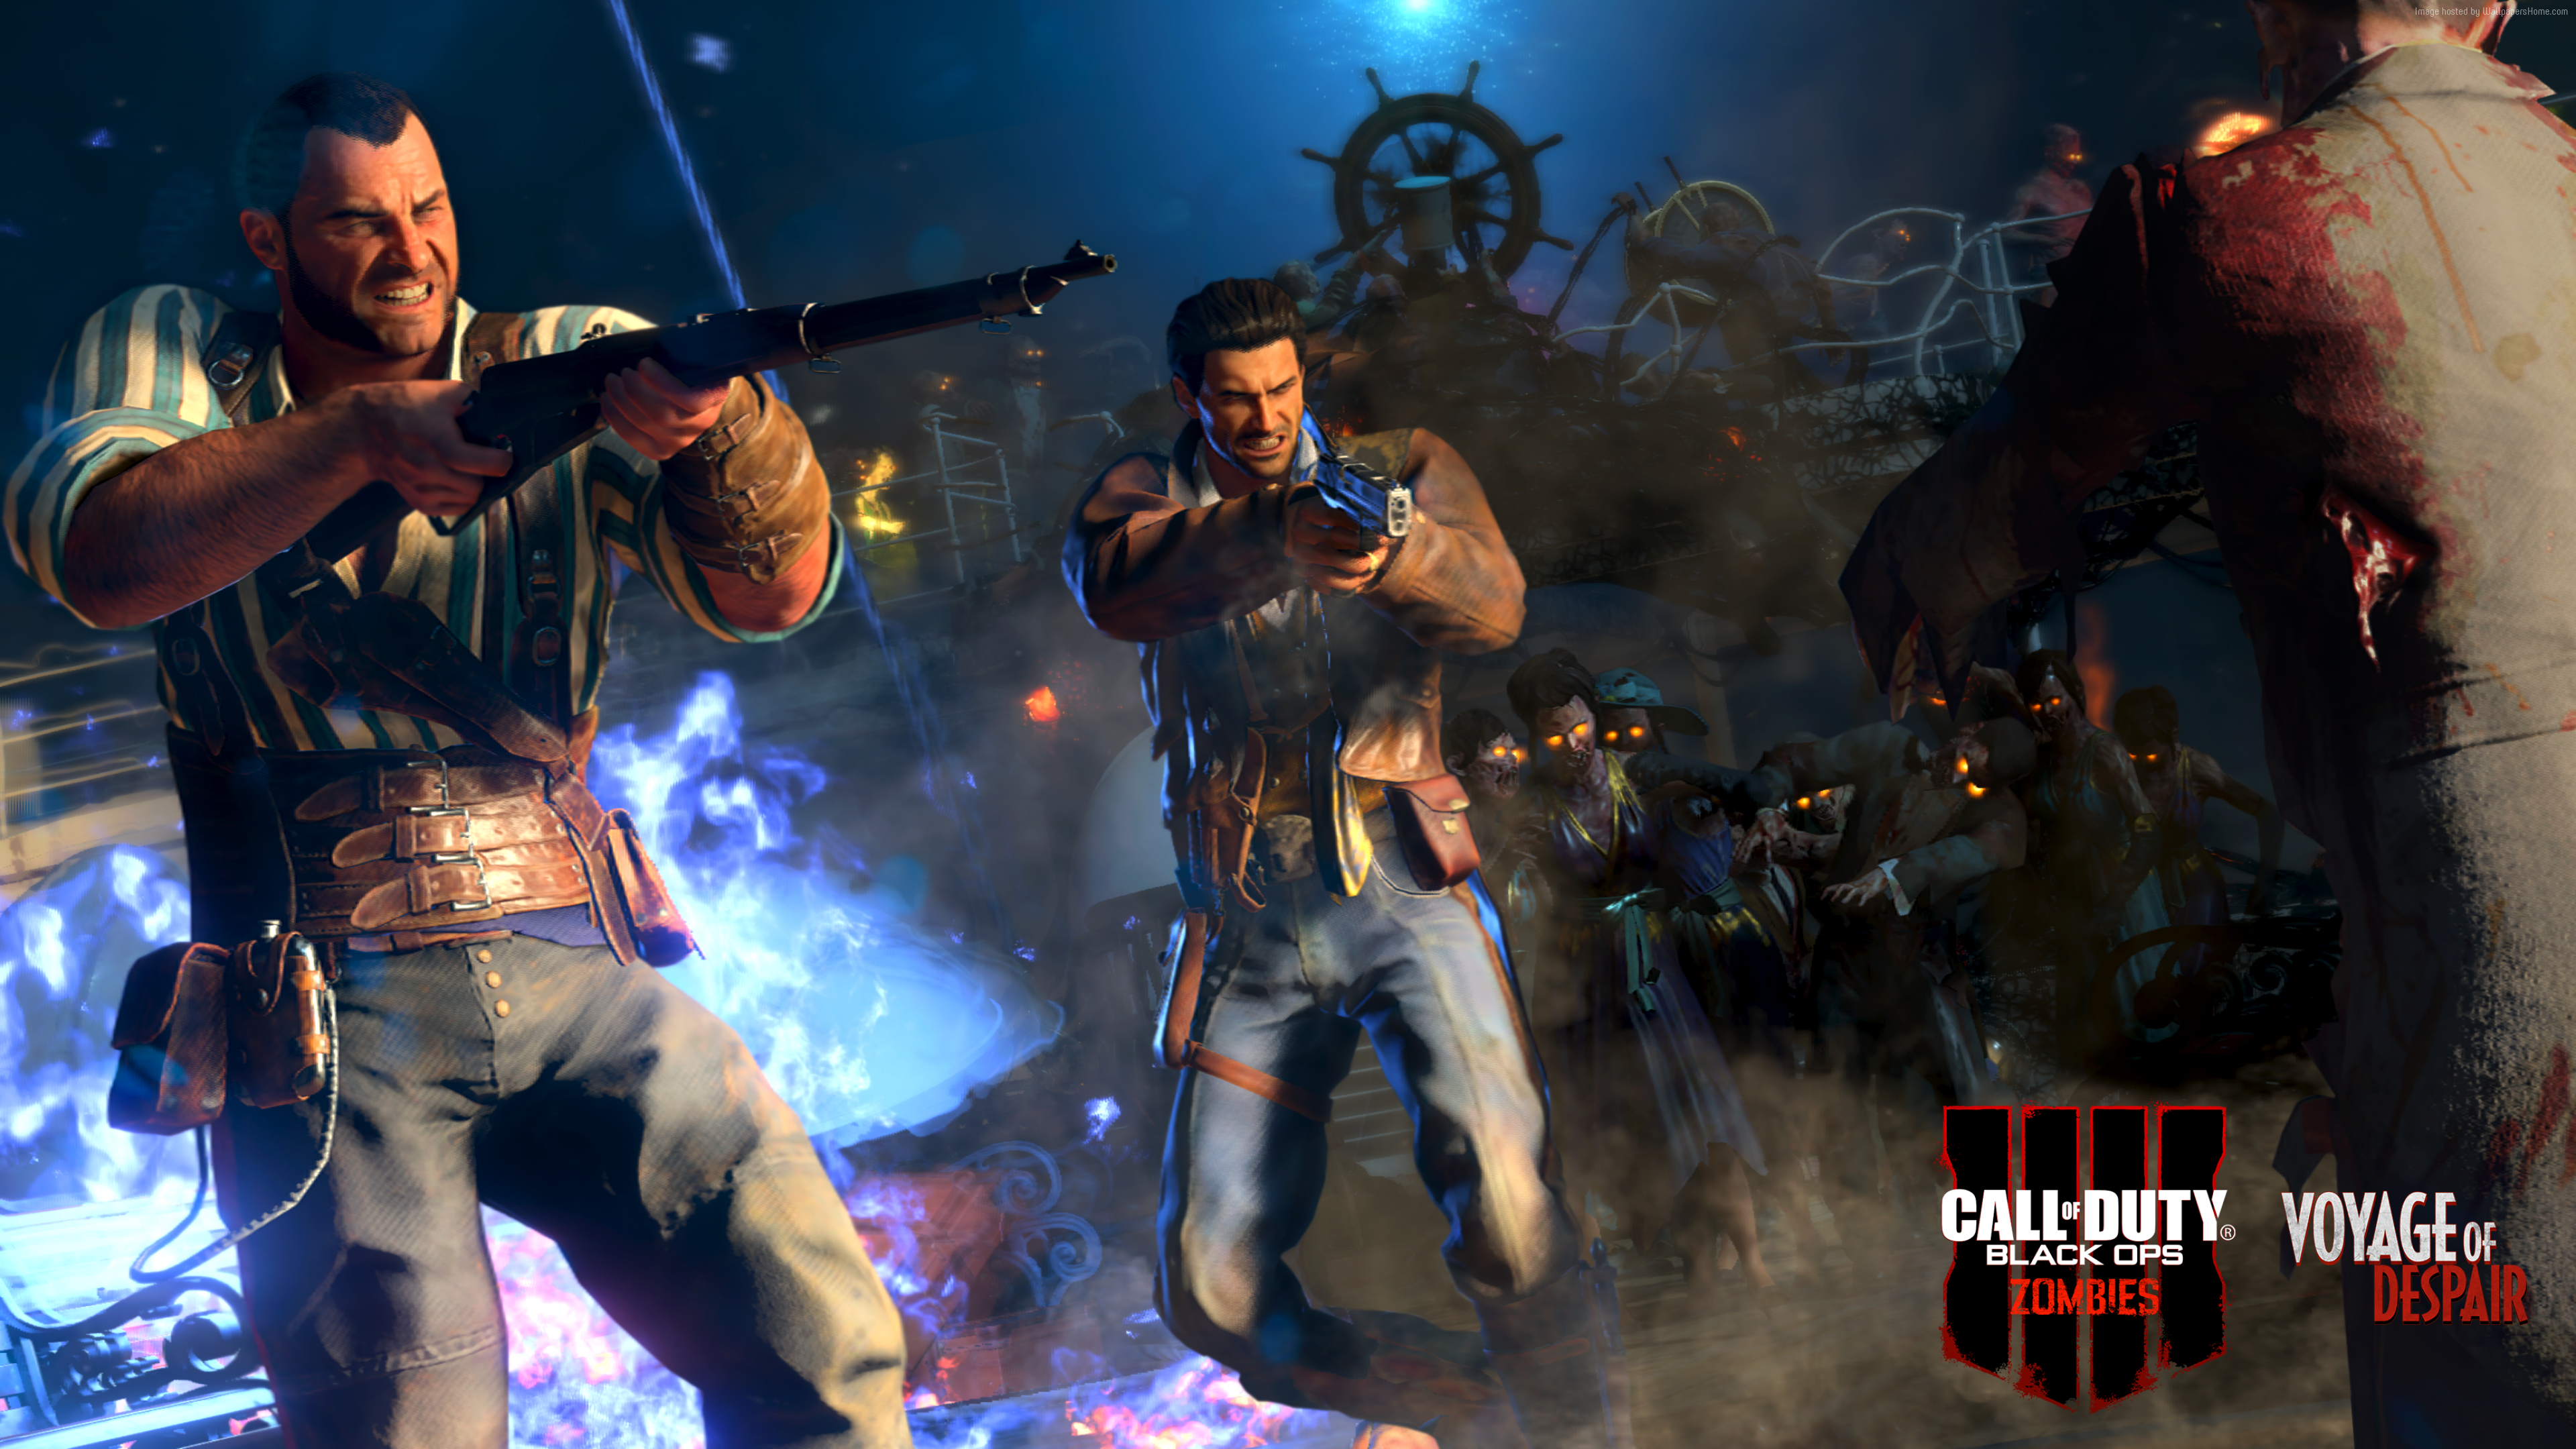 Black Ops 4 PS4 Lag & High Ping? Here's how you can fix that